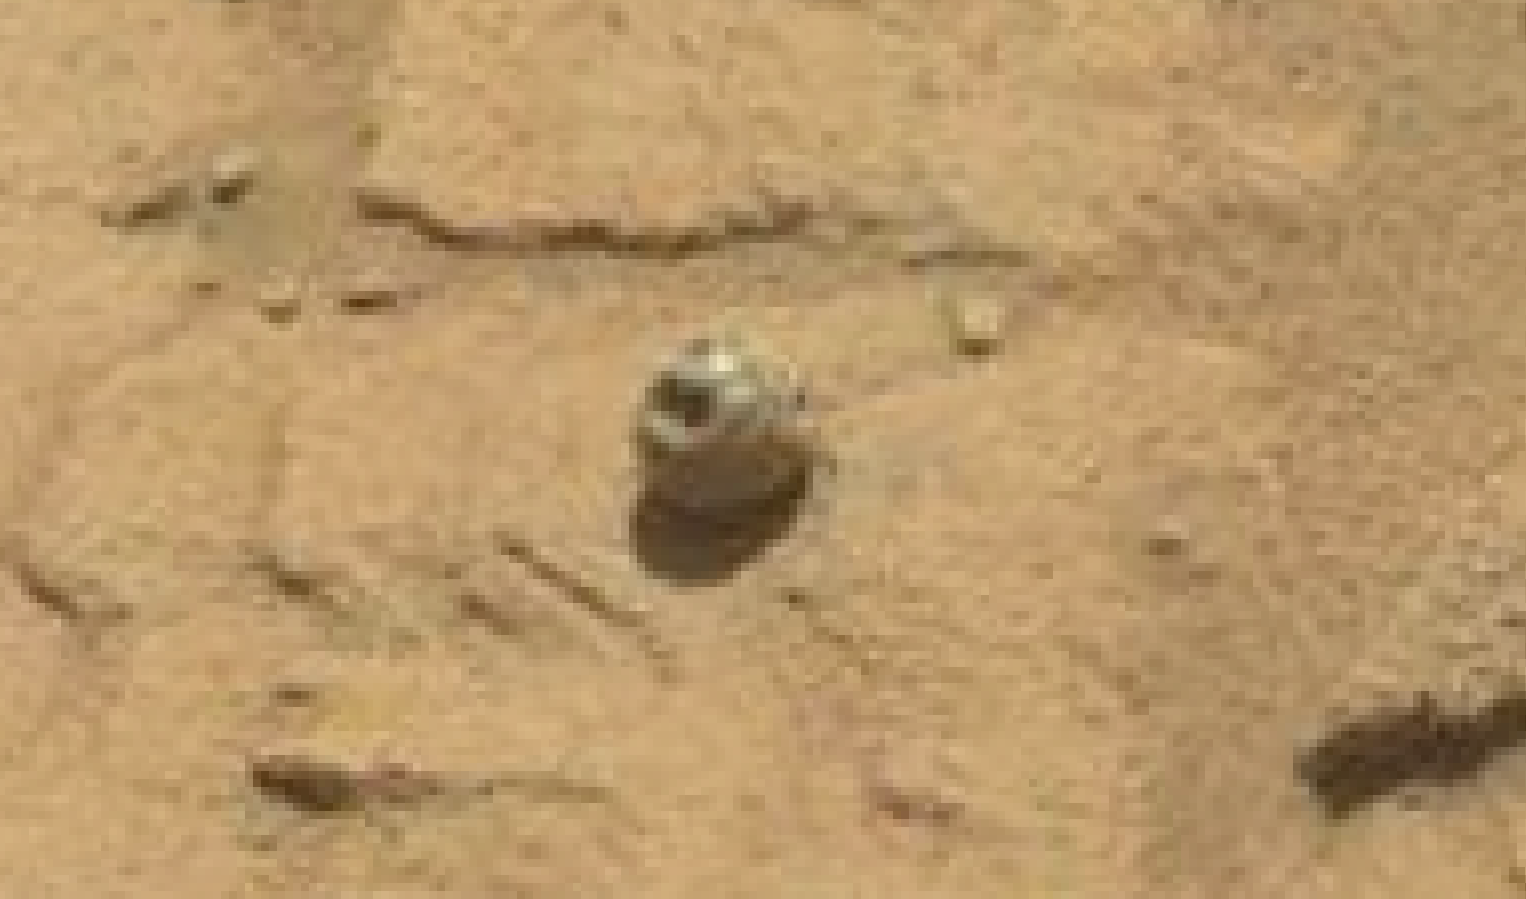 mars sol 1293 anomaly-artifacts 1a was life on mars